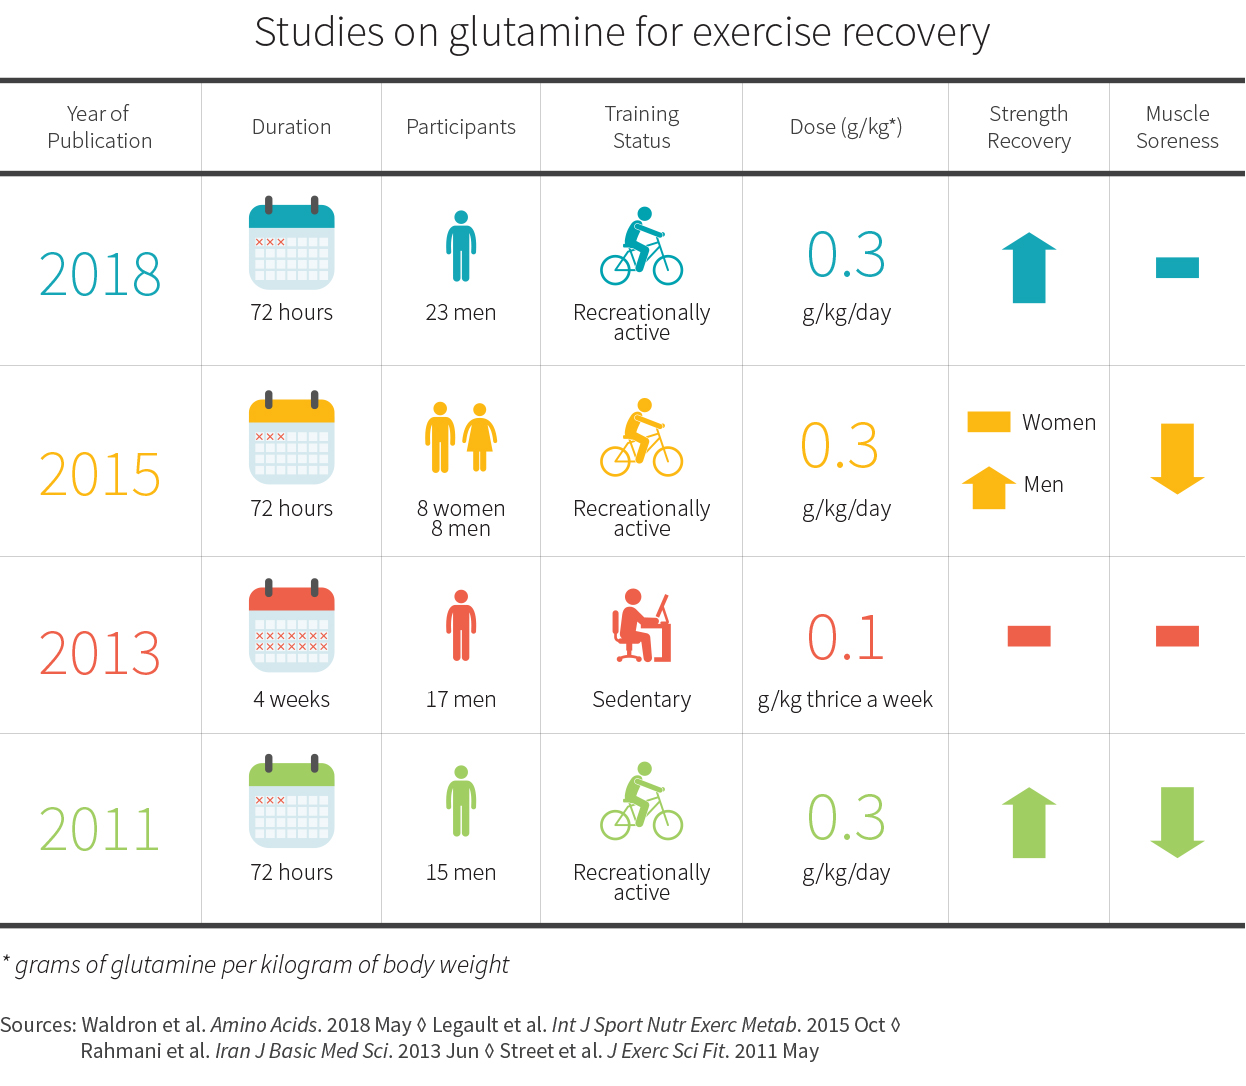 Studies on glutamine for exercise recovery